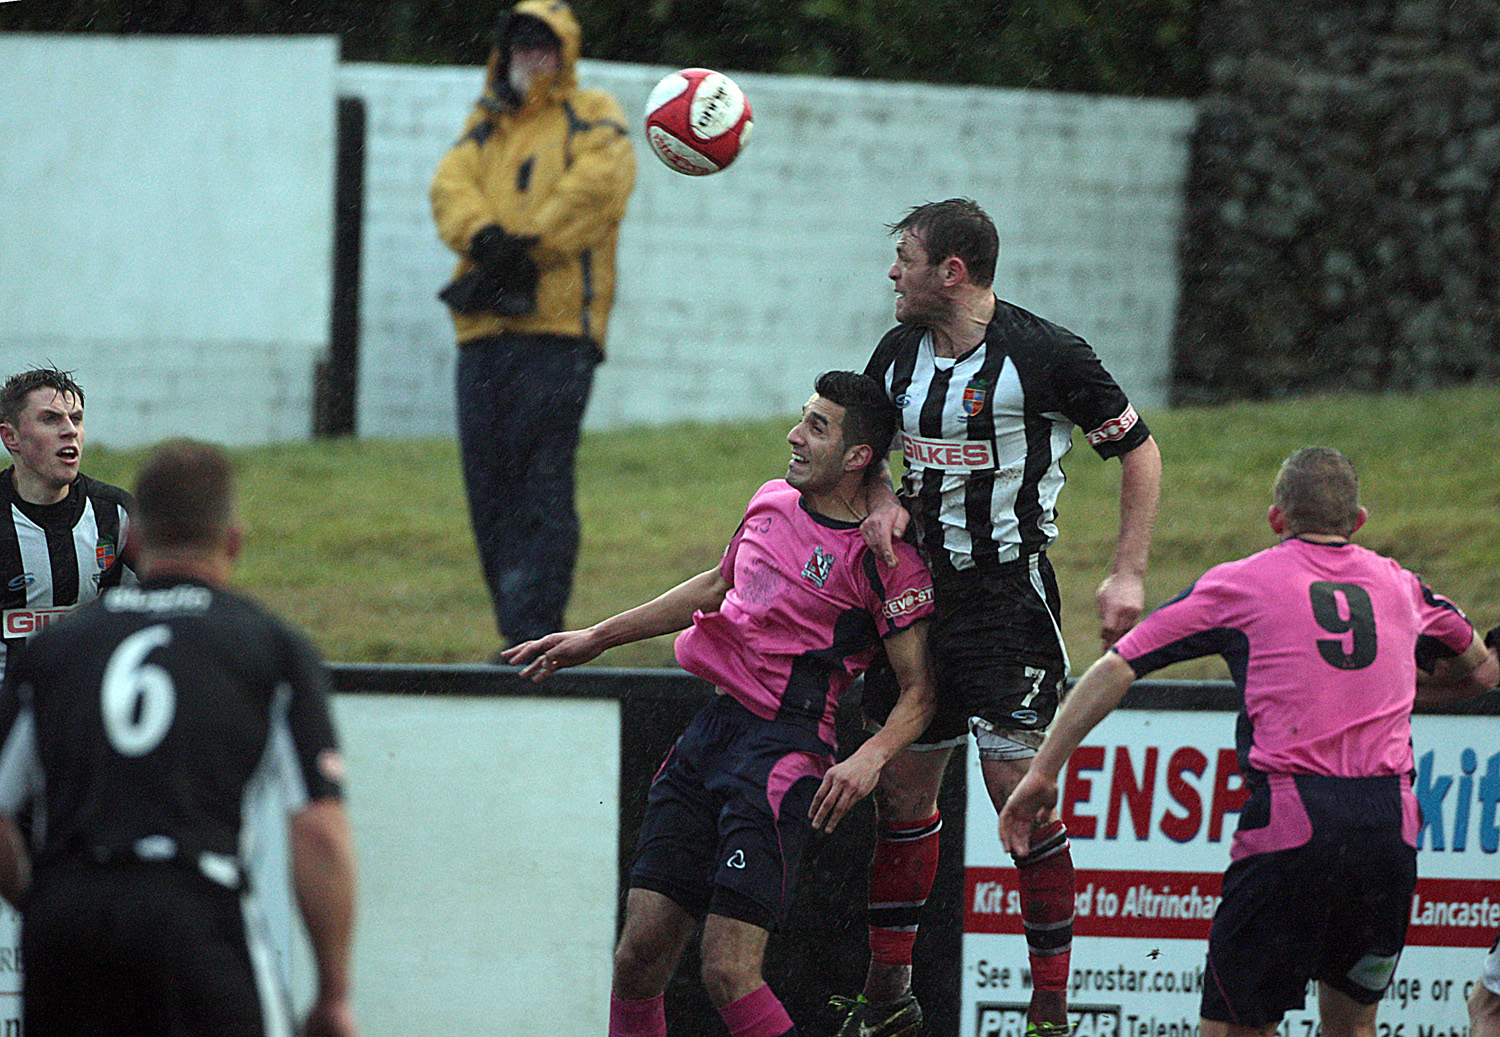 HIGH CHALLENGE: Amar Purewal jumps for the ball with Kendal Town's Ricky Mercer